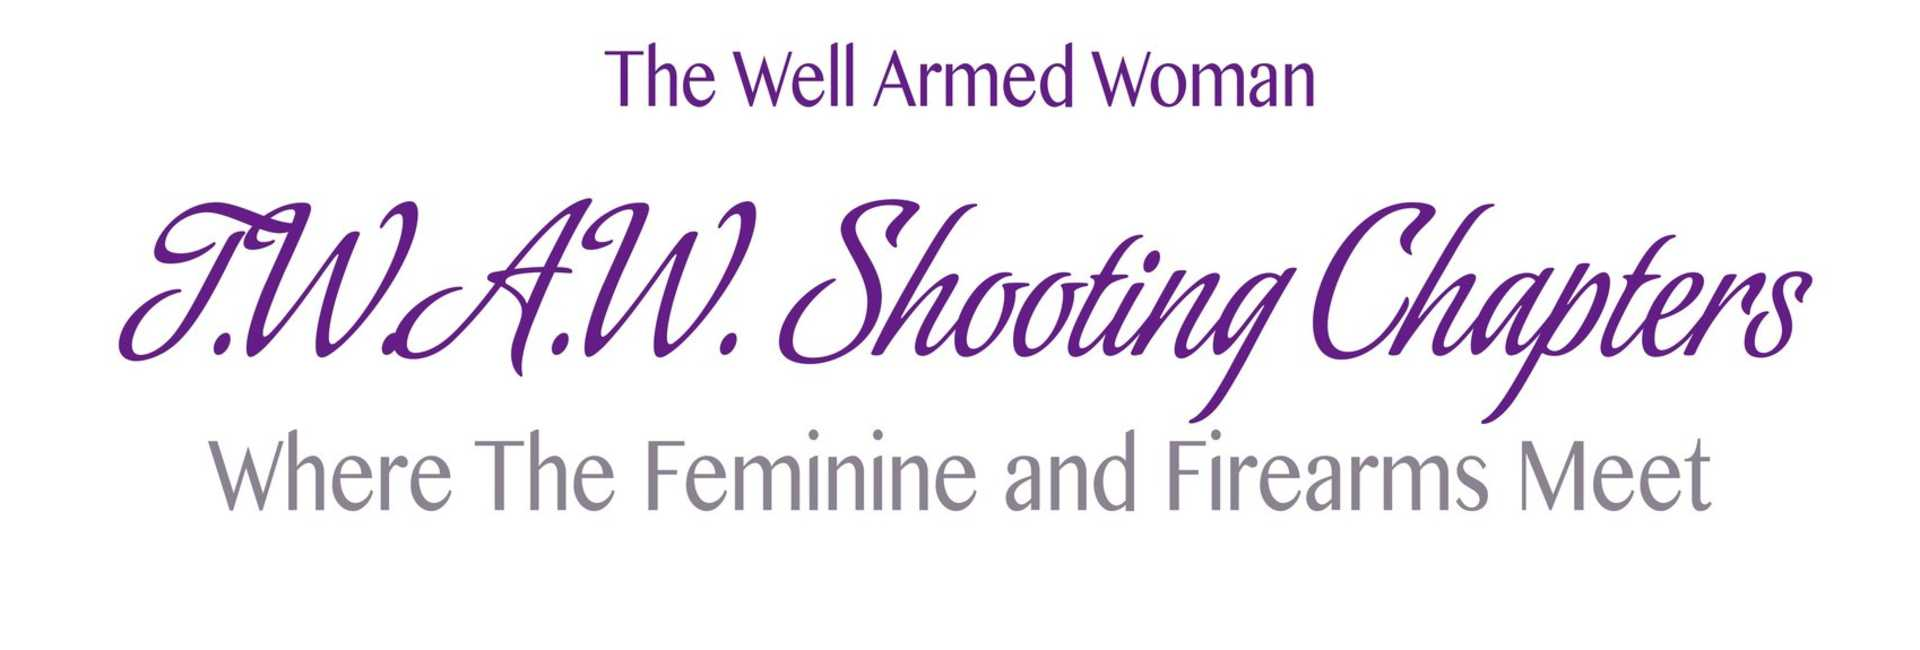 Welcome TWAW Shooting Chapters, Inc.